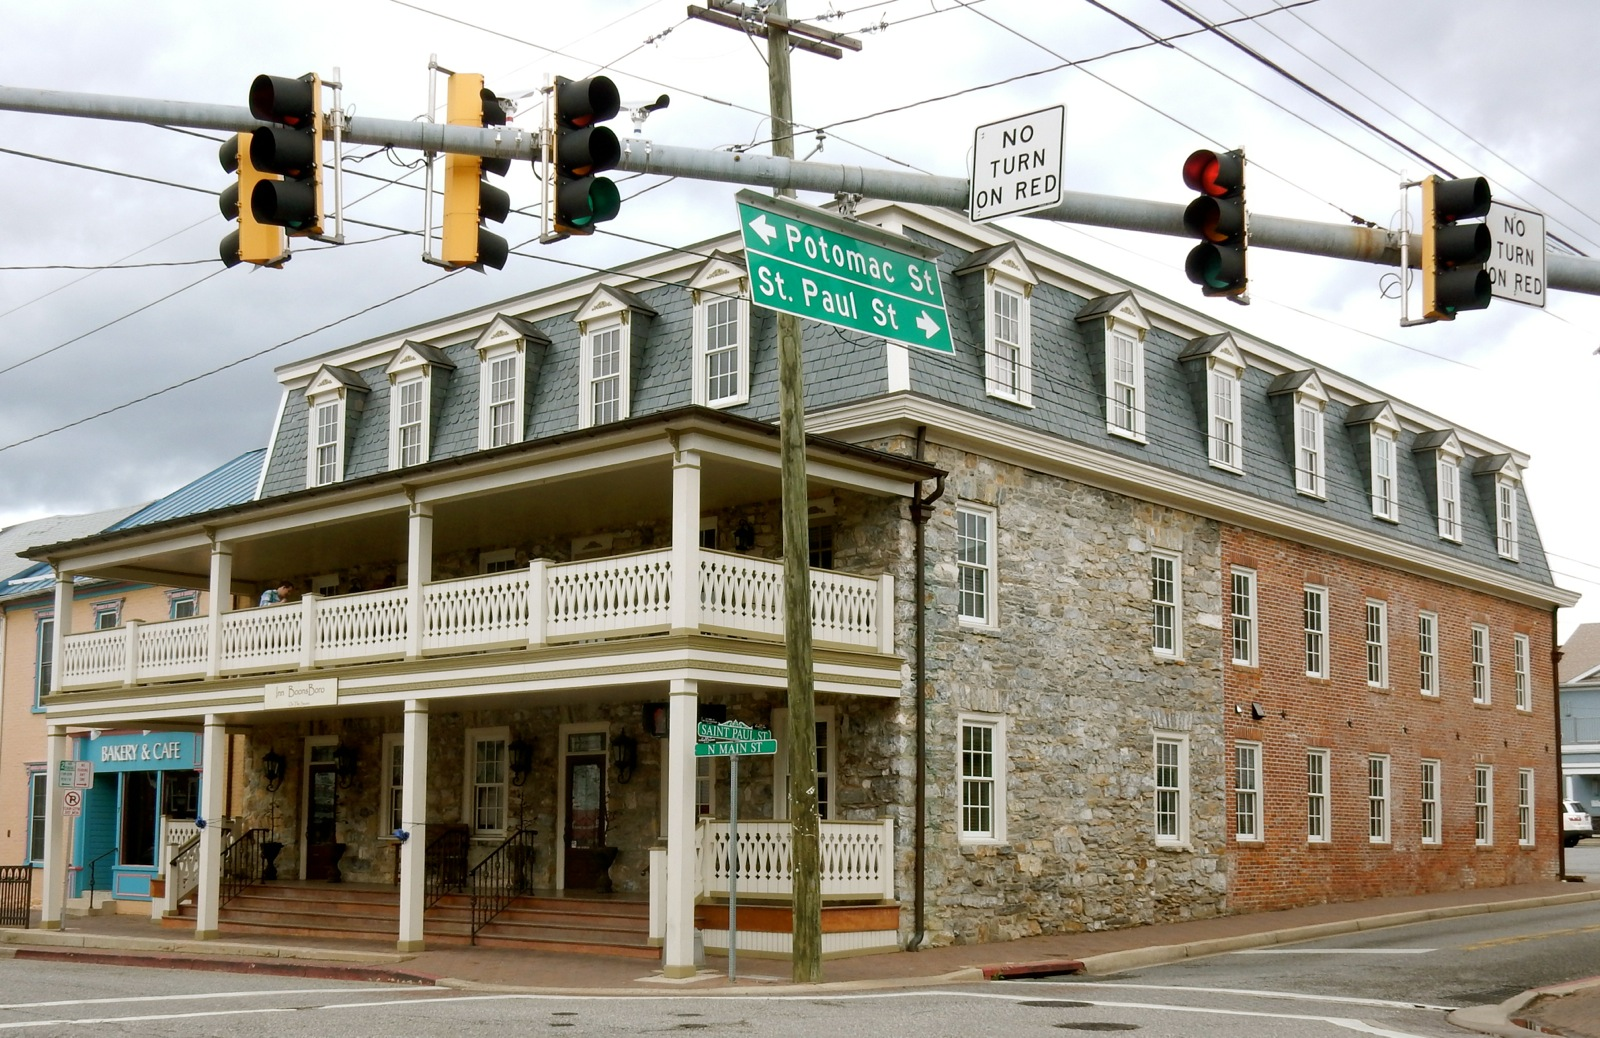 Inn Boonsboro, Boonsboro MD: Owned by Nora Roberts -